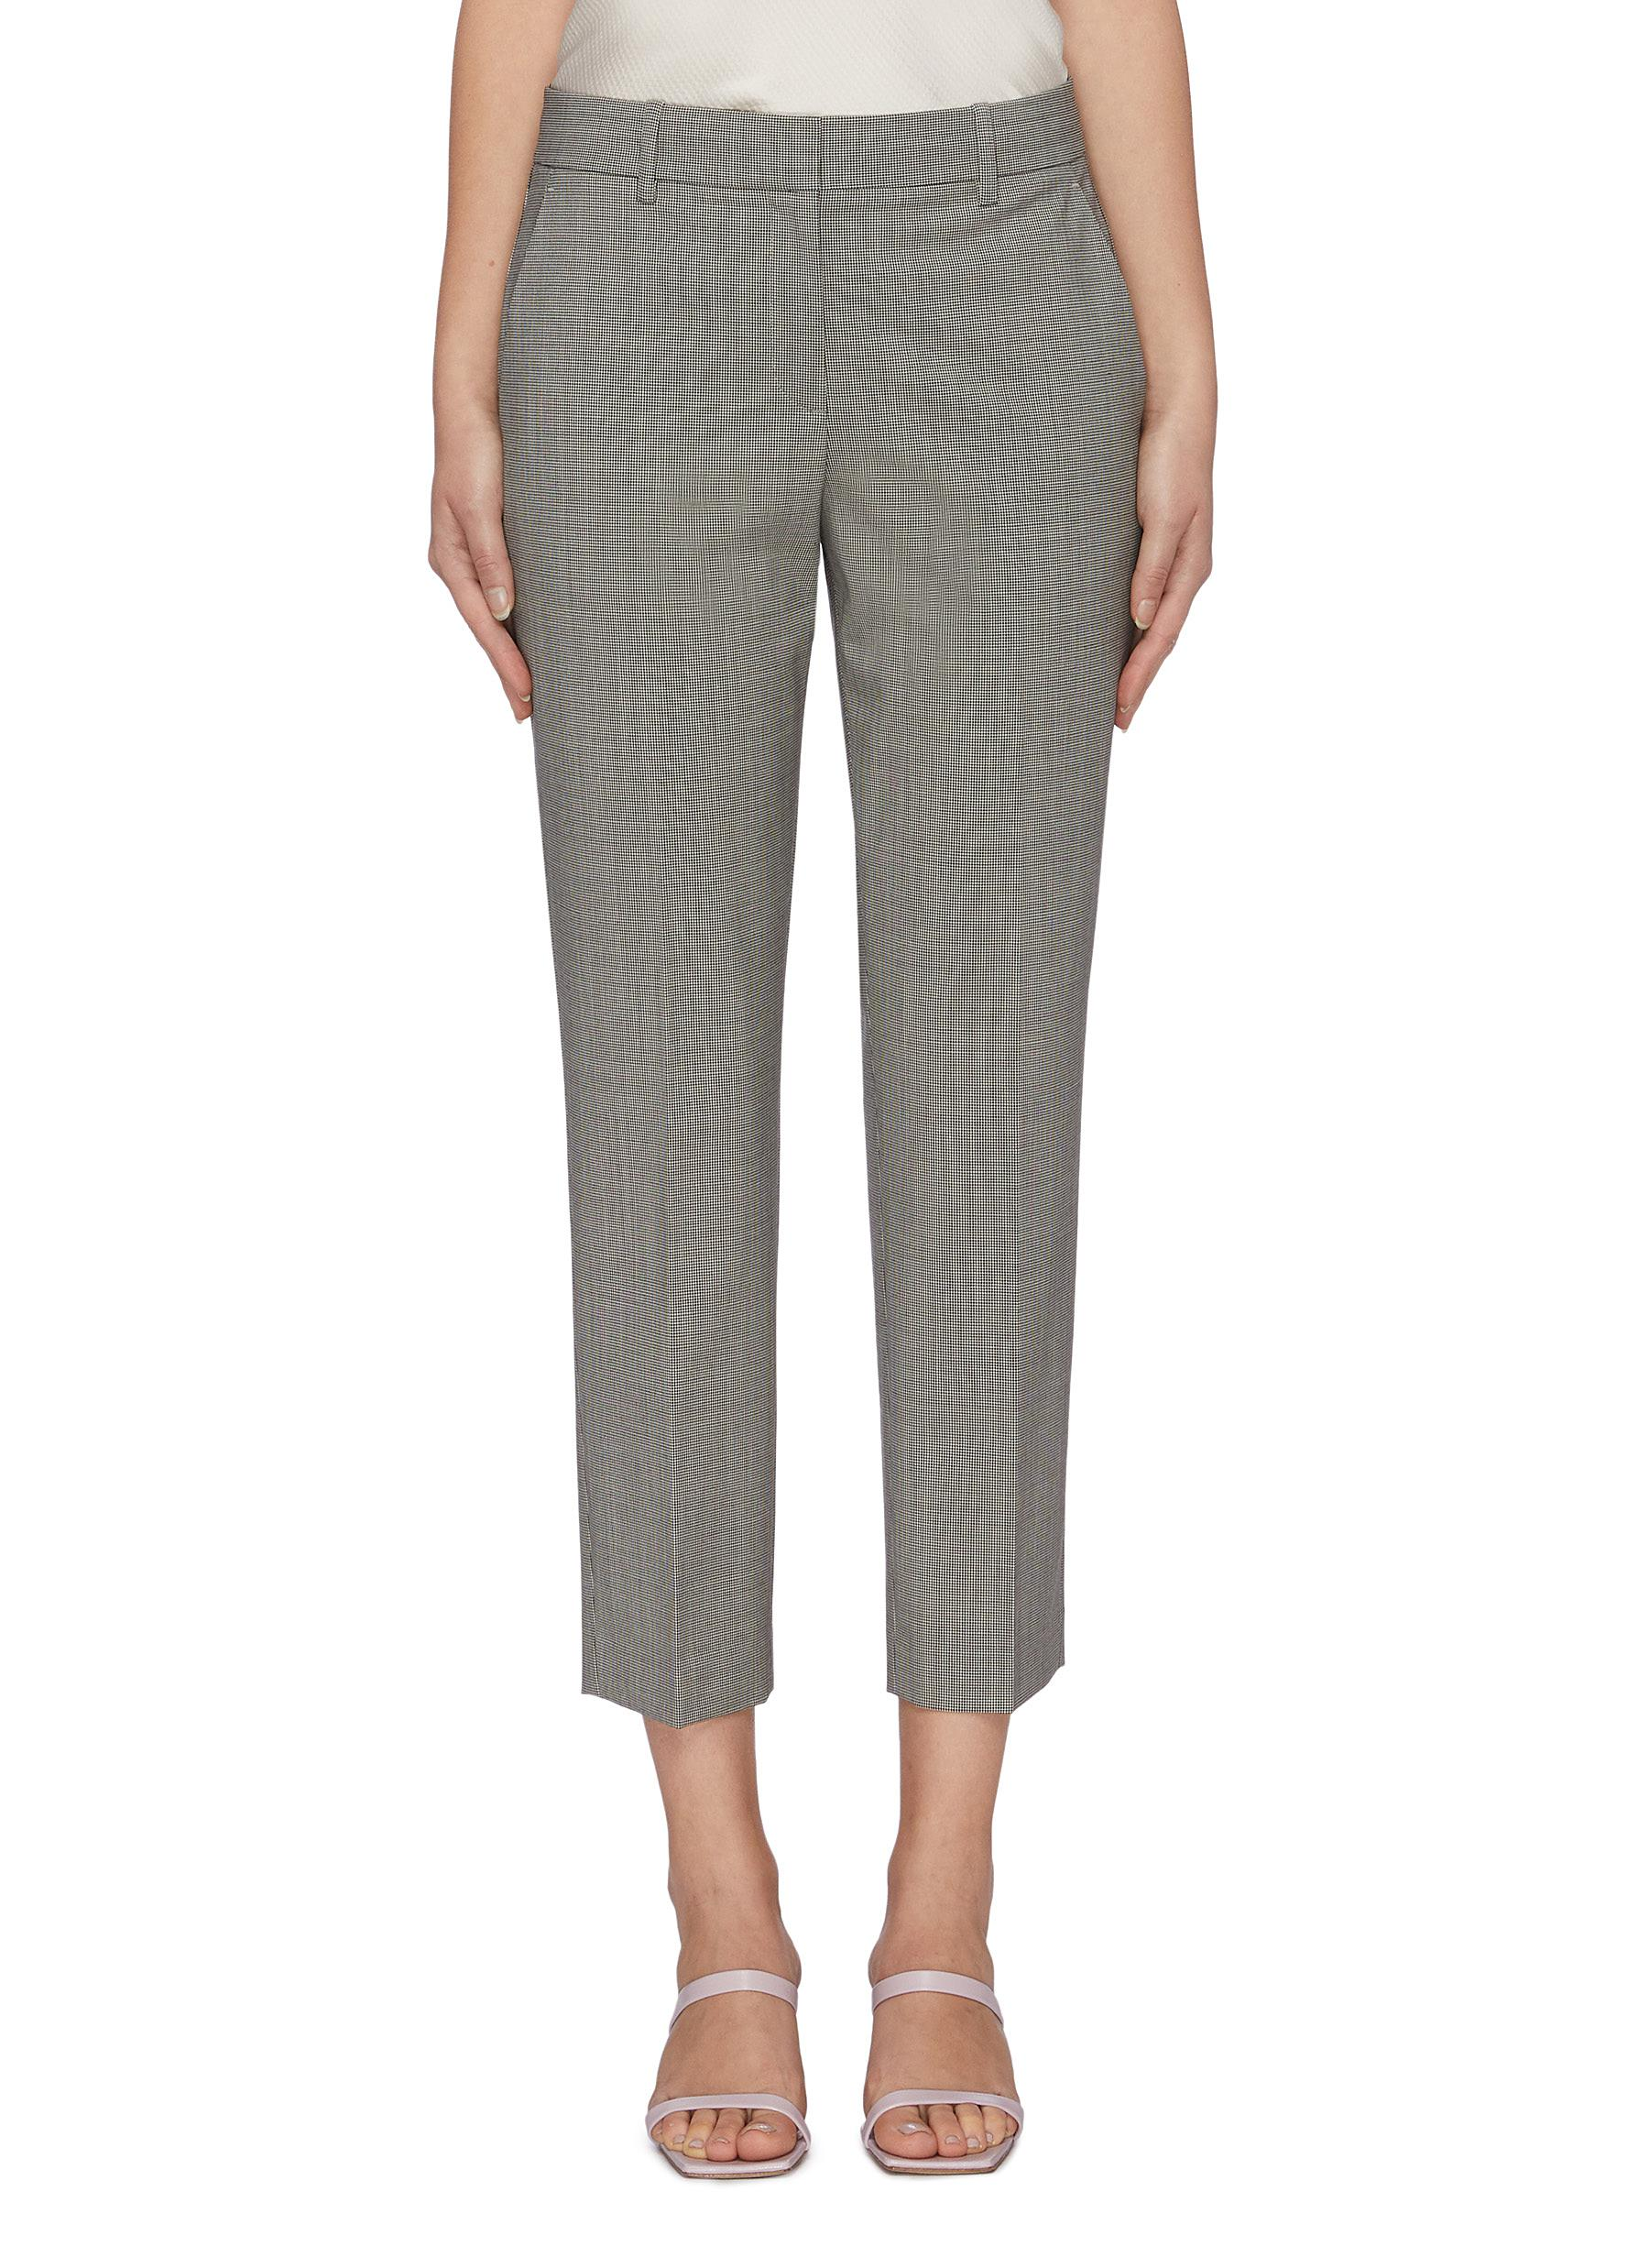 Treeca 2 houndstooth check merino wool suiting pants by Theory